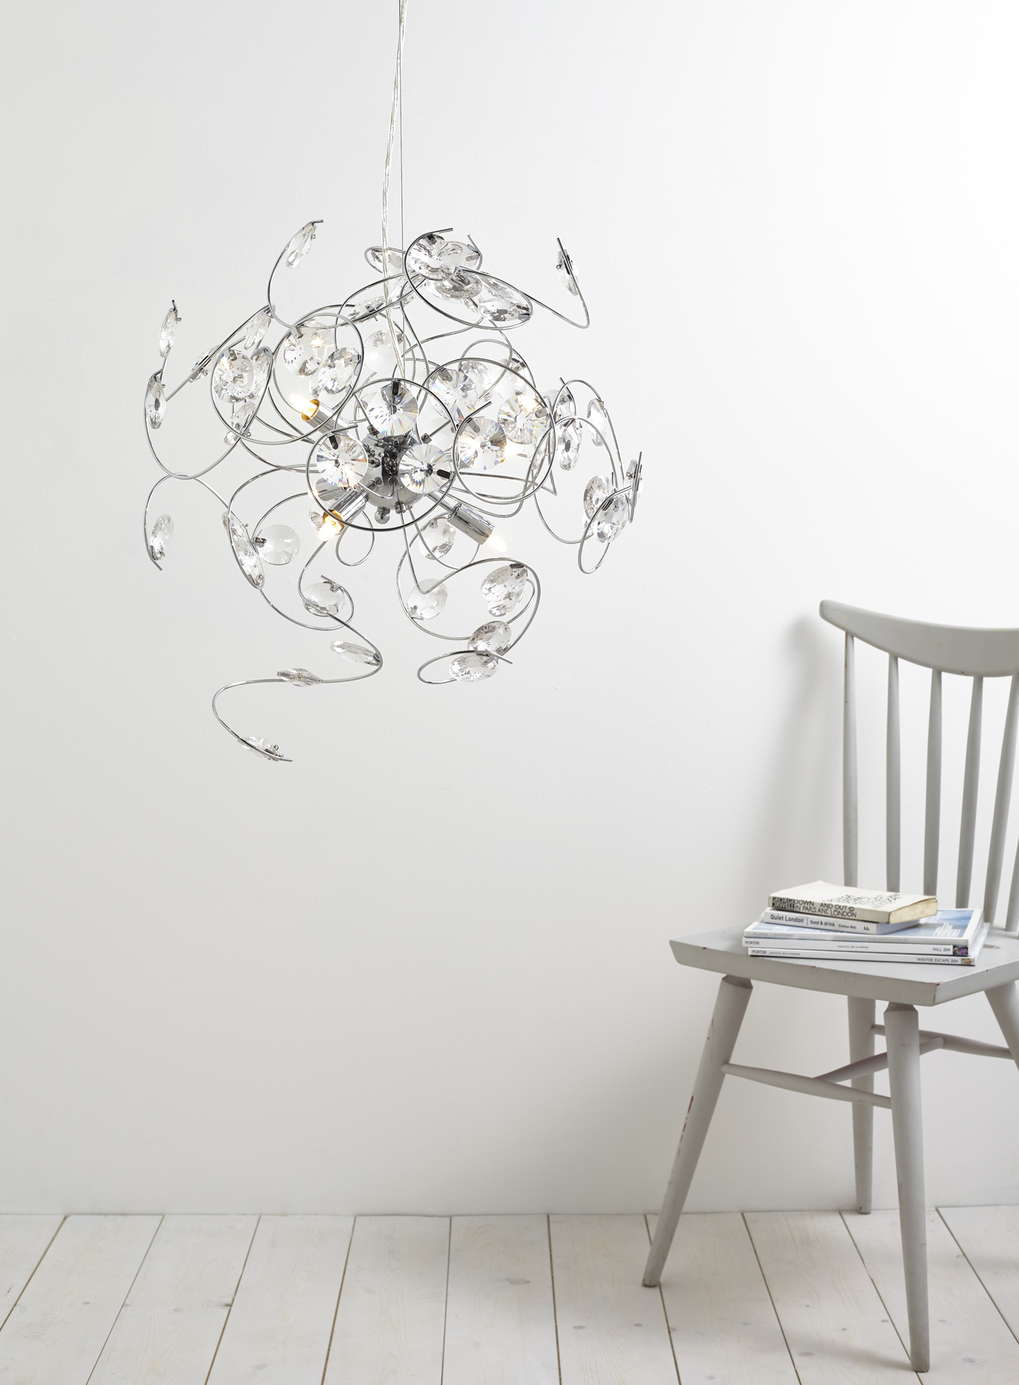 Bhs Zeta Wall Lights : Bhs ceiling light - quench your thirst for beauty and aesthetic genius all in one go Warisan ...